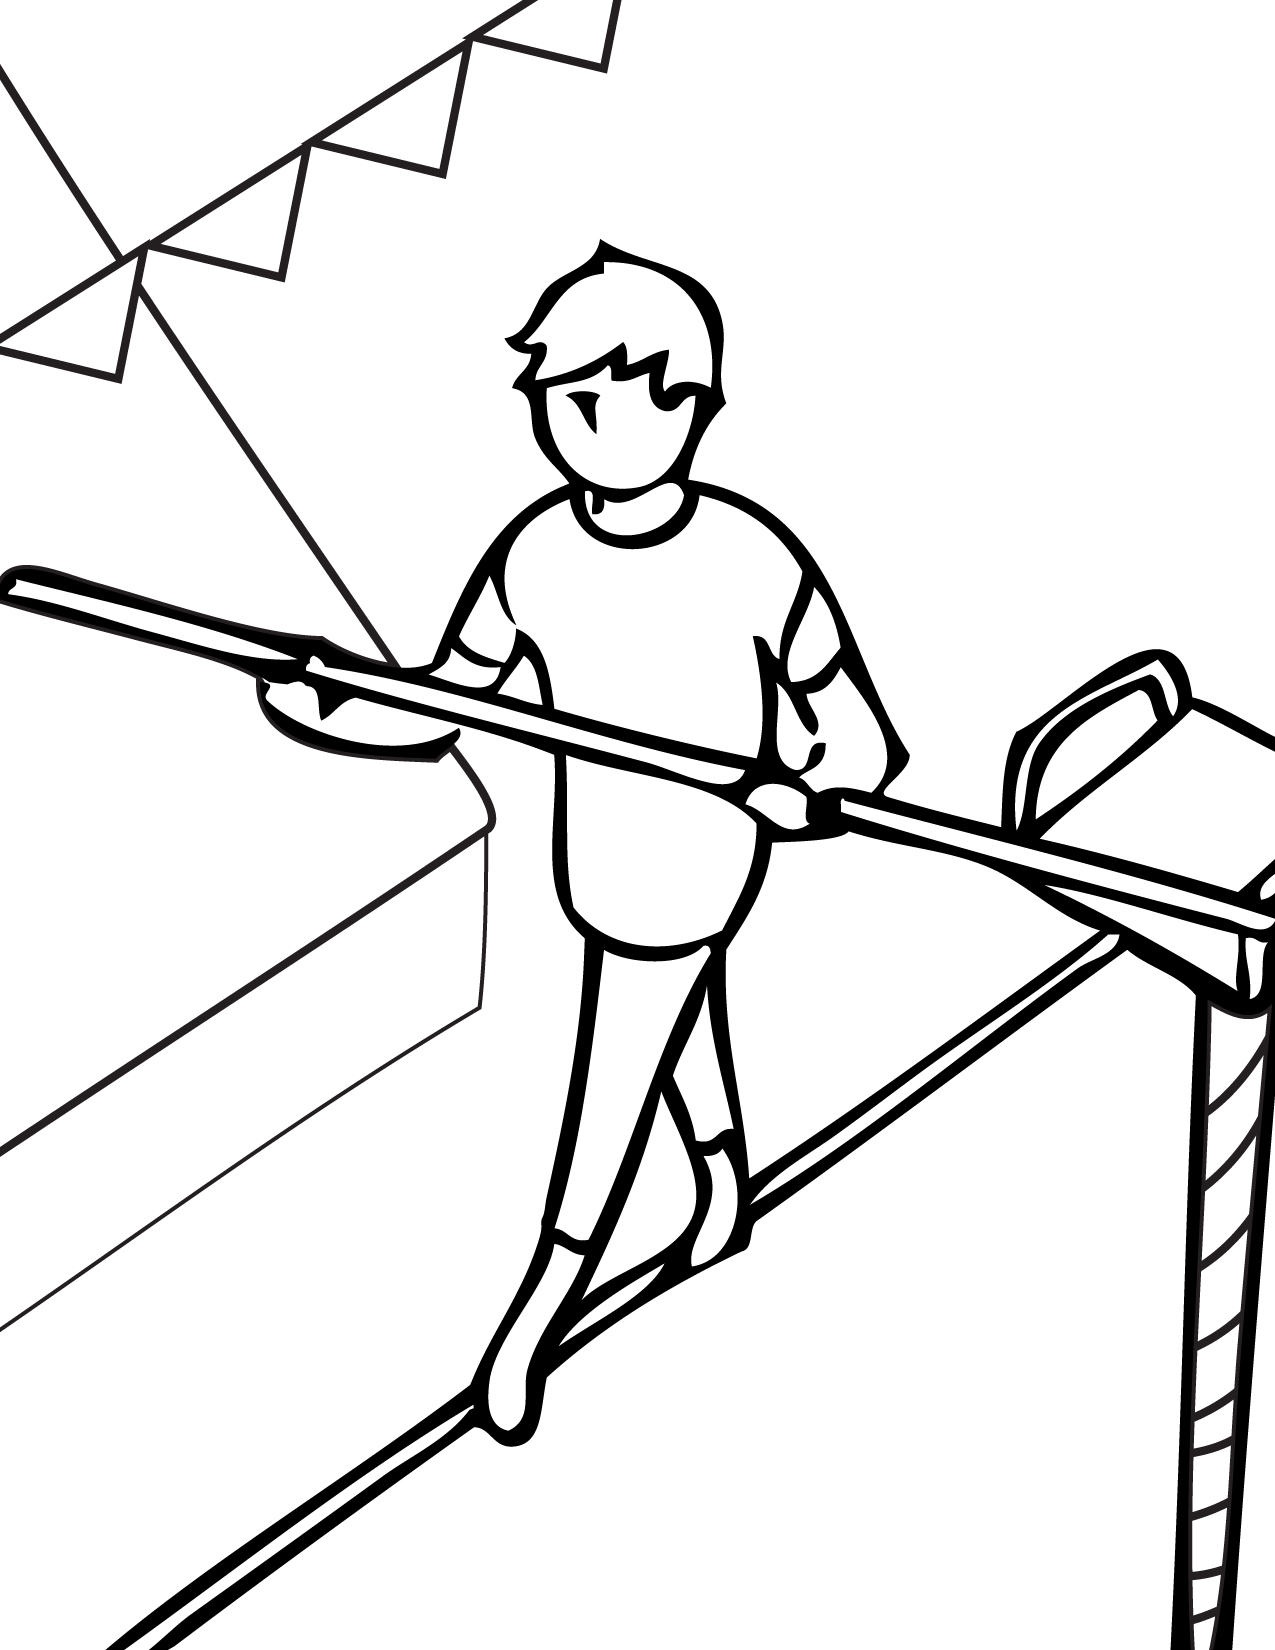 Tightrope Walker Coloring Pages Coloring Pages